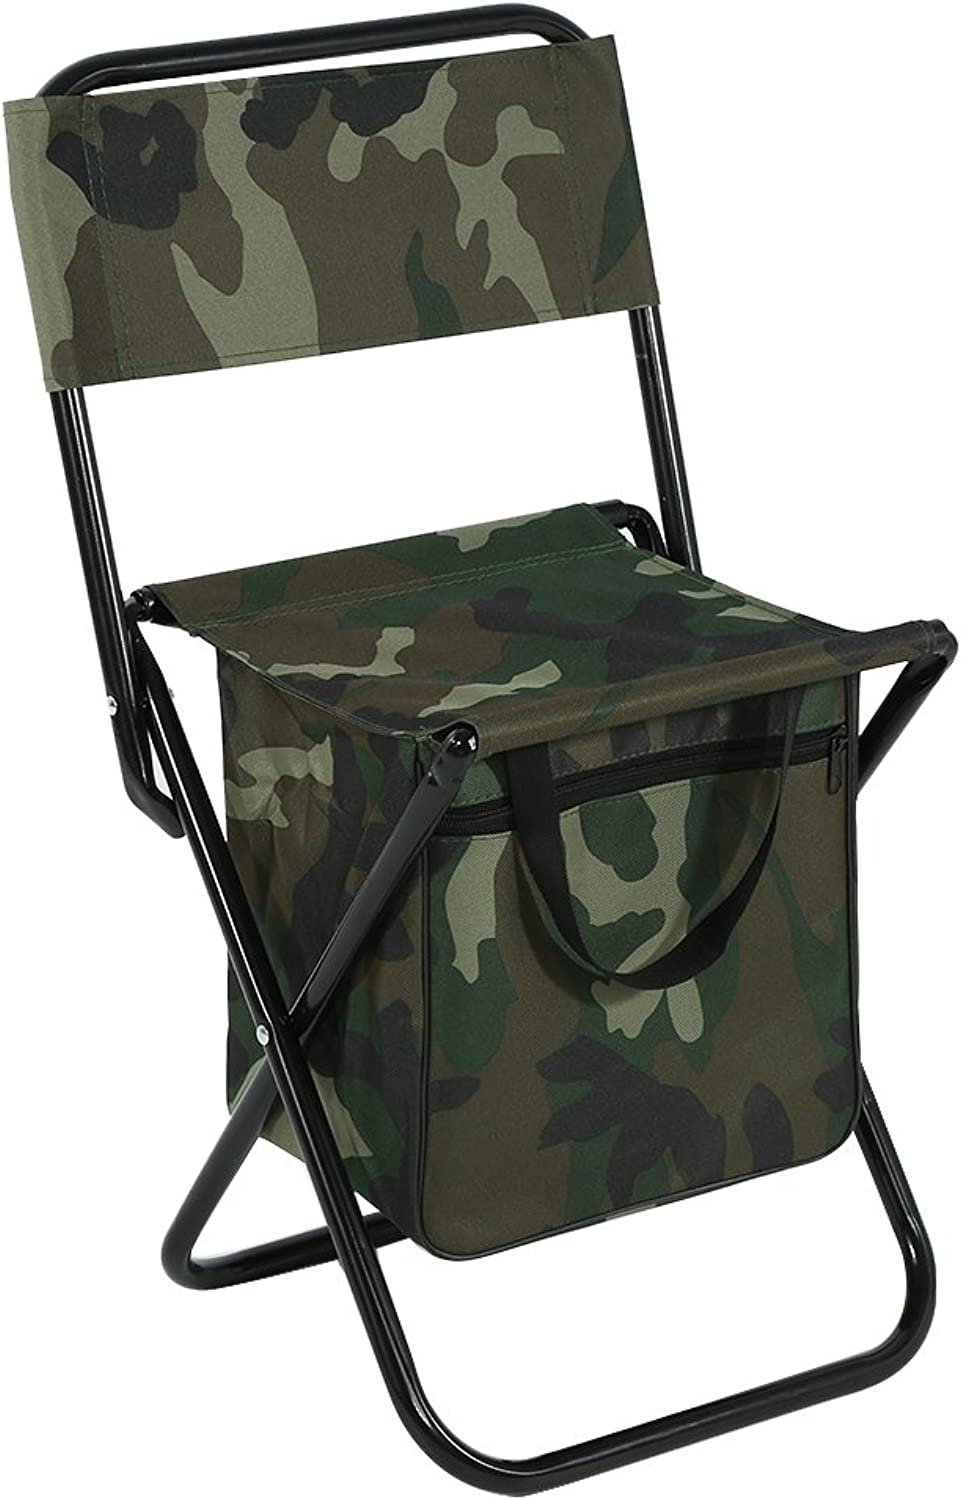 Fishing Chair,Asixx Foldable Outdoor Camping Fishing Chair Convenient Carry Seat Made Steel Pipes and 600D Durable Oxford Fabric, Camouflage color